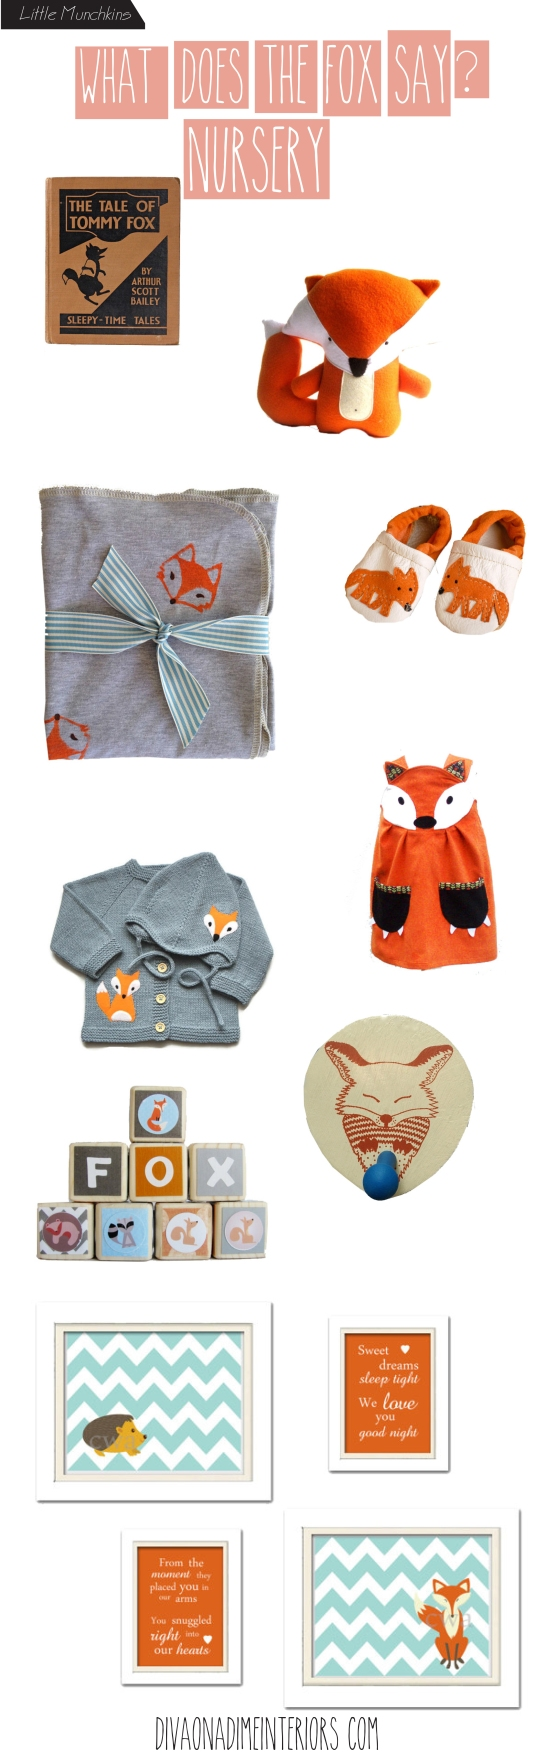 WHAT DOES THE FOX SAY DIVA ON A DIME INTERIORS BLOG MARISSA IACOVONI INTERIOR DESIGNER